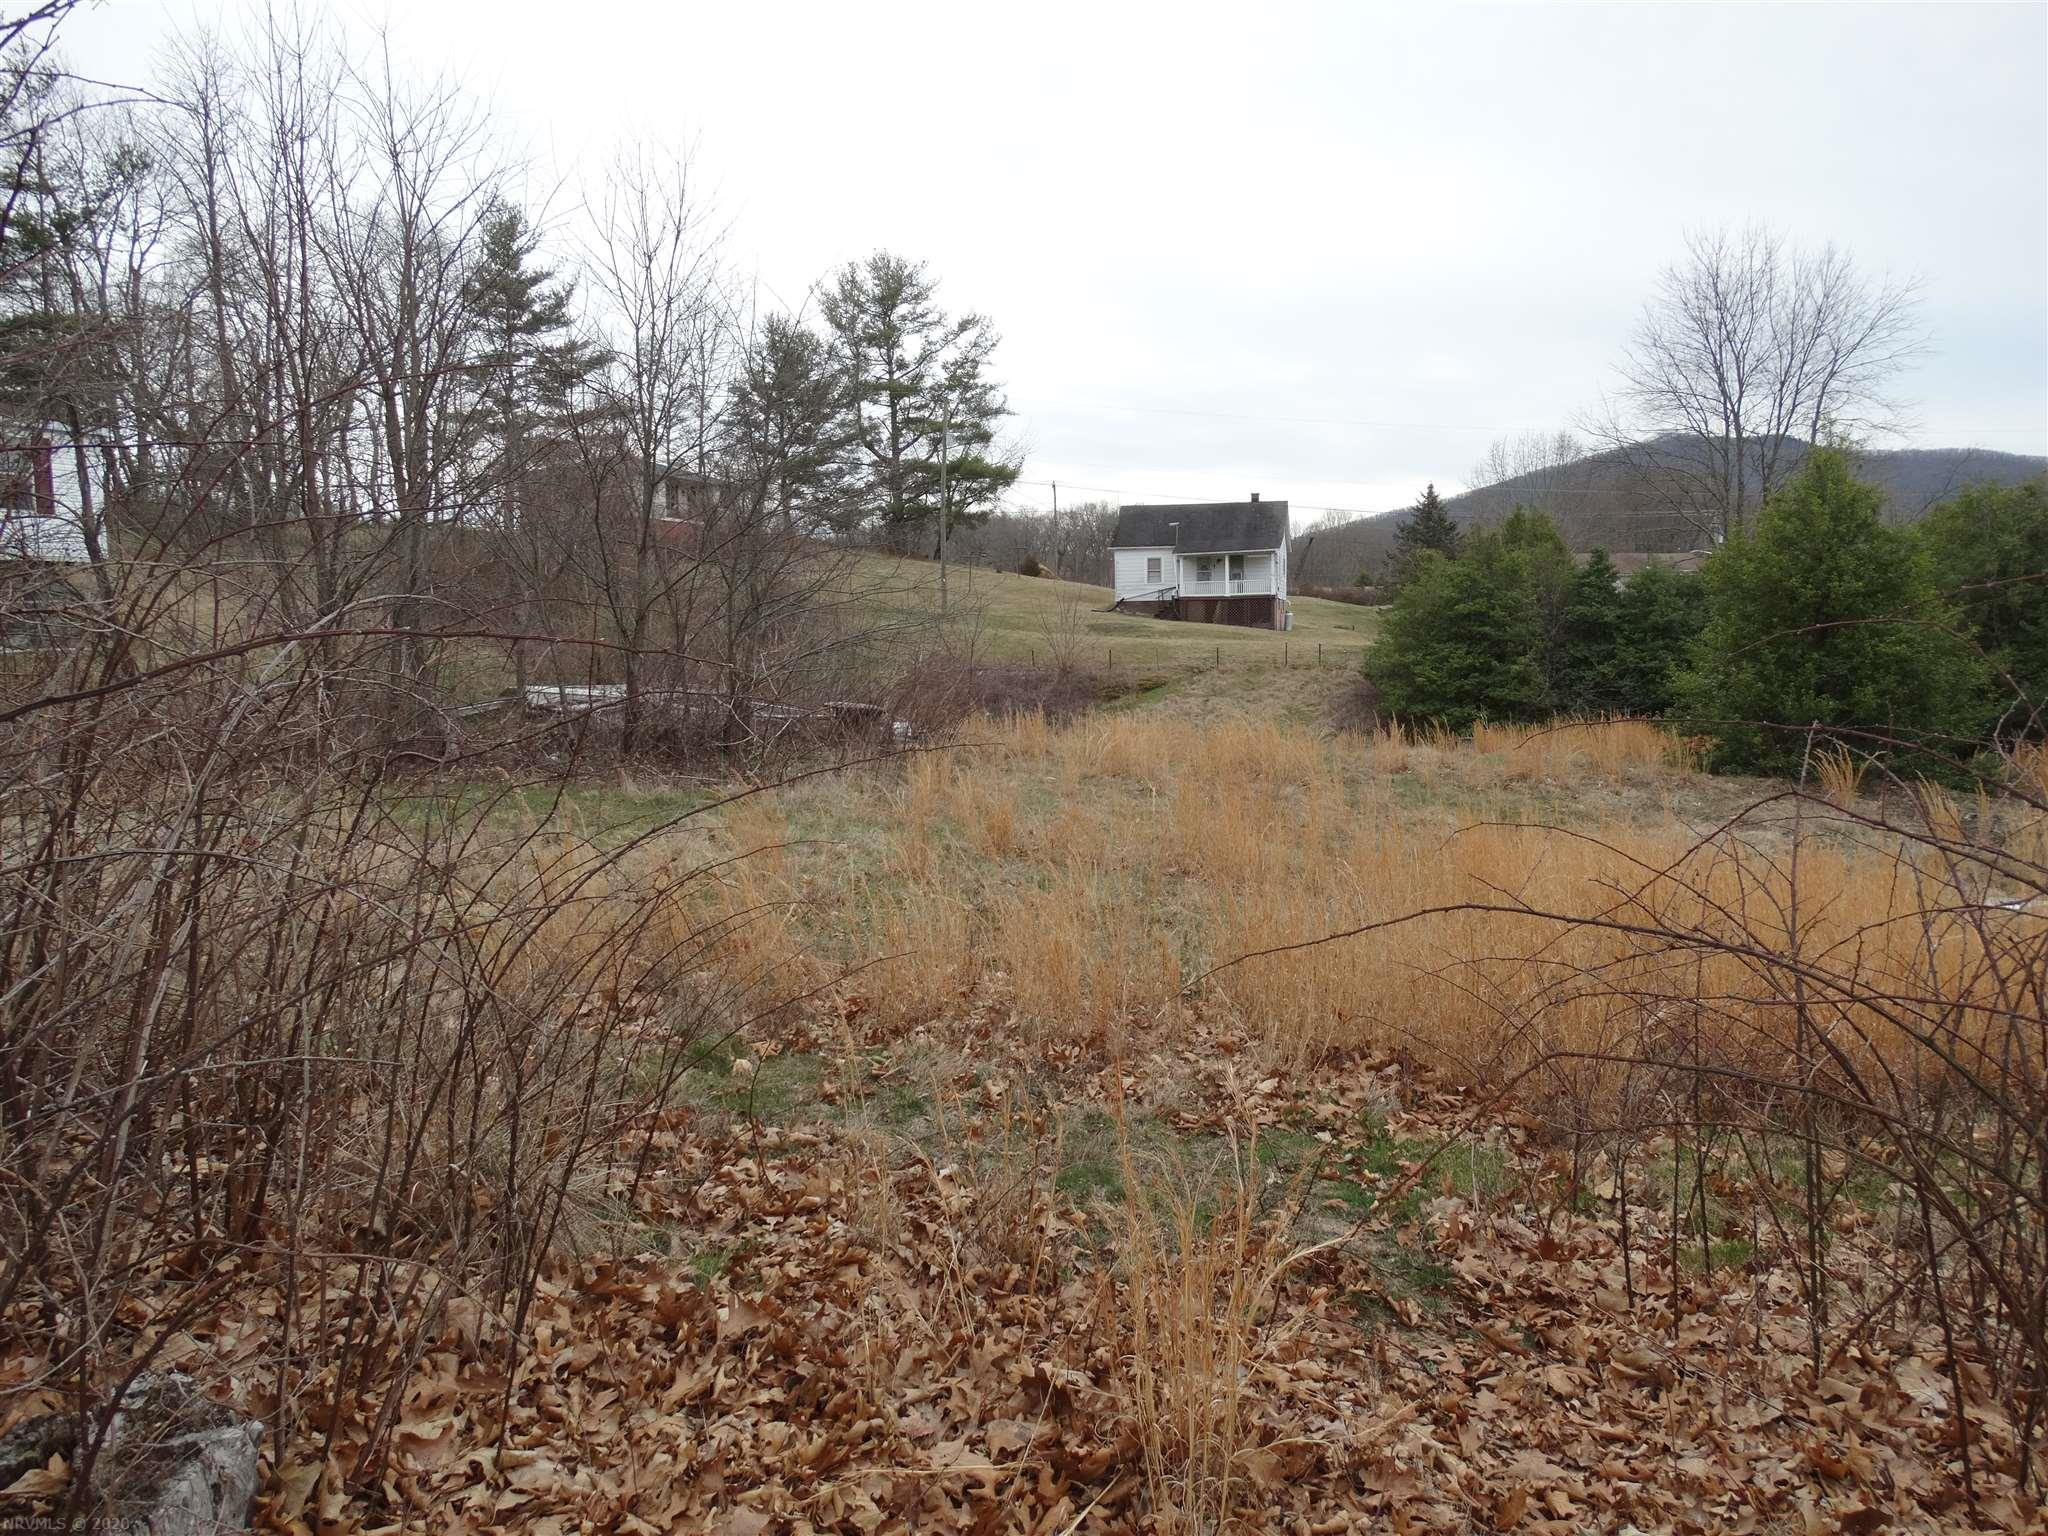 PRICE REDUCED !!                                                                 $13,475/LOT with 2 LOTS BEING SOLD FOR $26,950. Possible to build home or put DWMH on each lot. Public water & public sewer at the street.  Lot 22 on left has deeded access with 20' Alley as on Survey. Lot 23 has deeded access with 30' unimproved road on right per survey. Seller will remove lumber on Lot 23 if Buyer desires or buyer may have lumber. See documents & especially survey for details.  Lots - mainly cleared. Less than 3 minutes to Memorial drive, shopping & downtown Pulaski PLUS  10 min. via I-81 to Dublin. Keep both lots as total of .48 acre. Zoned R-3 - Multi-Family Residential. Don't RENT - Buy these lots & build a NEW HOME or DWMH. Buy Both Lots, keep 1 & sell the other.